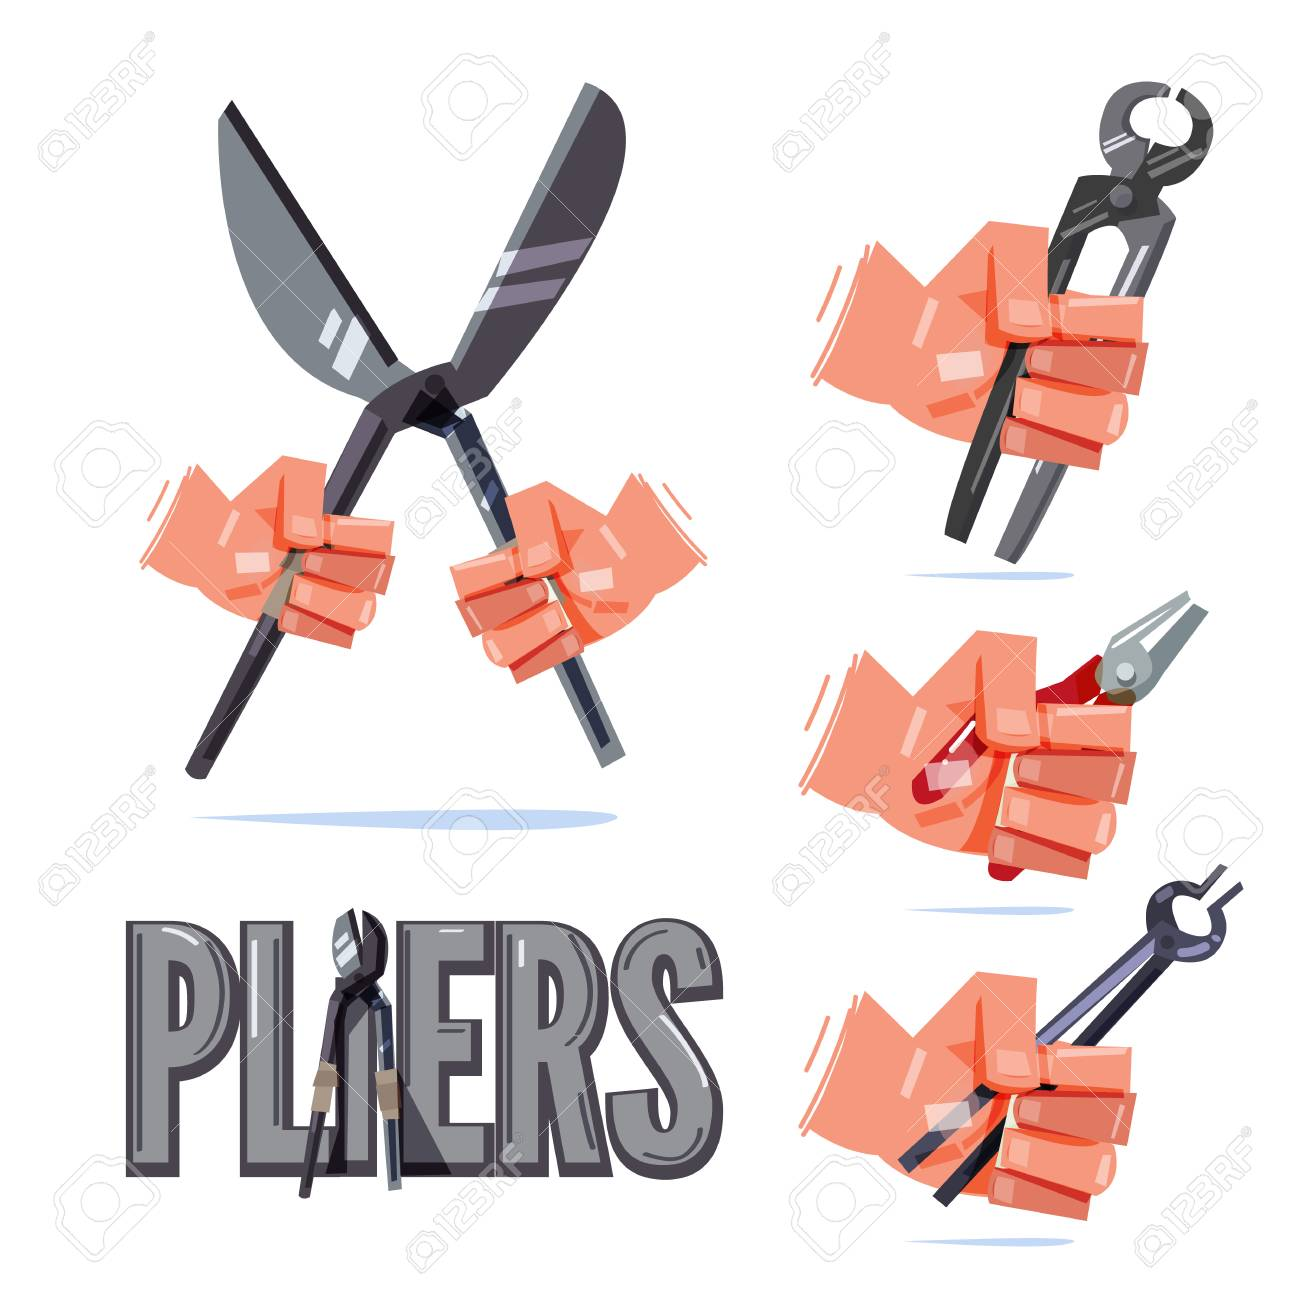 Hand holding type of pliers. hand and tool concept - vector illustration - 98039369